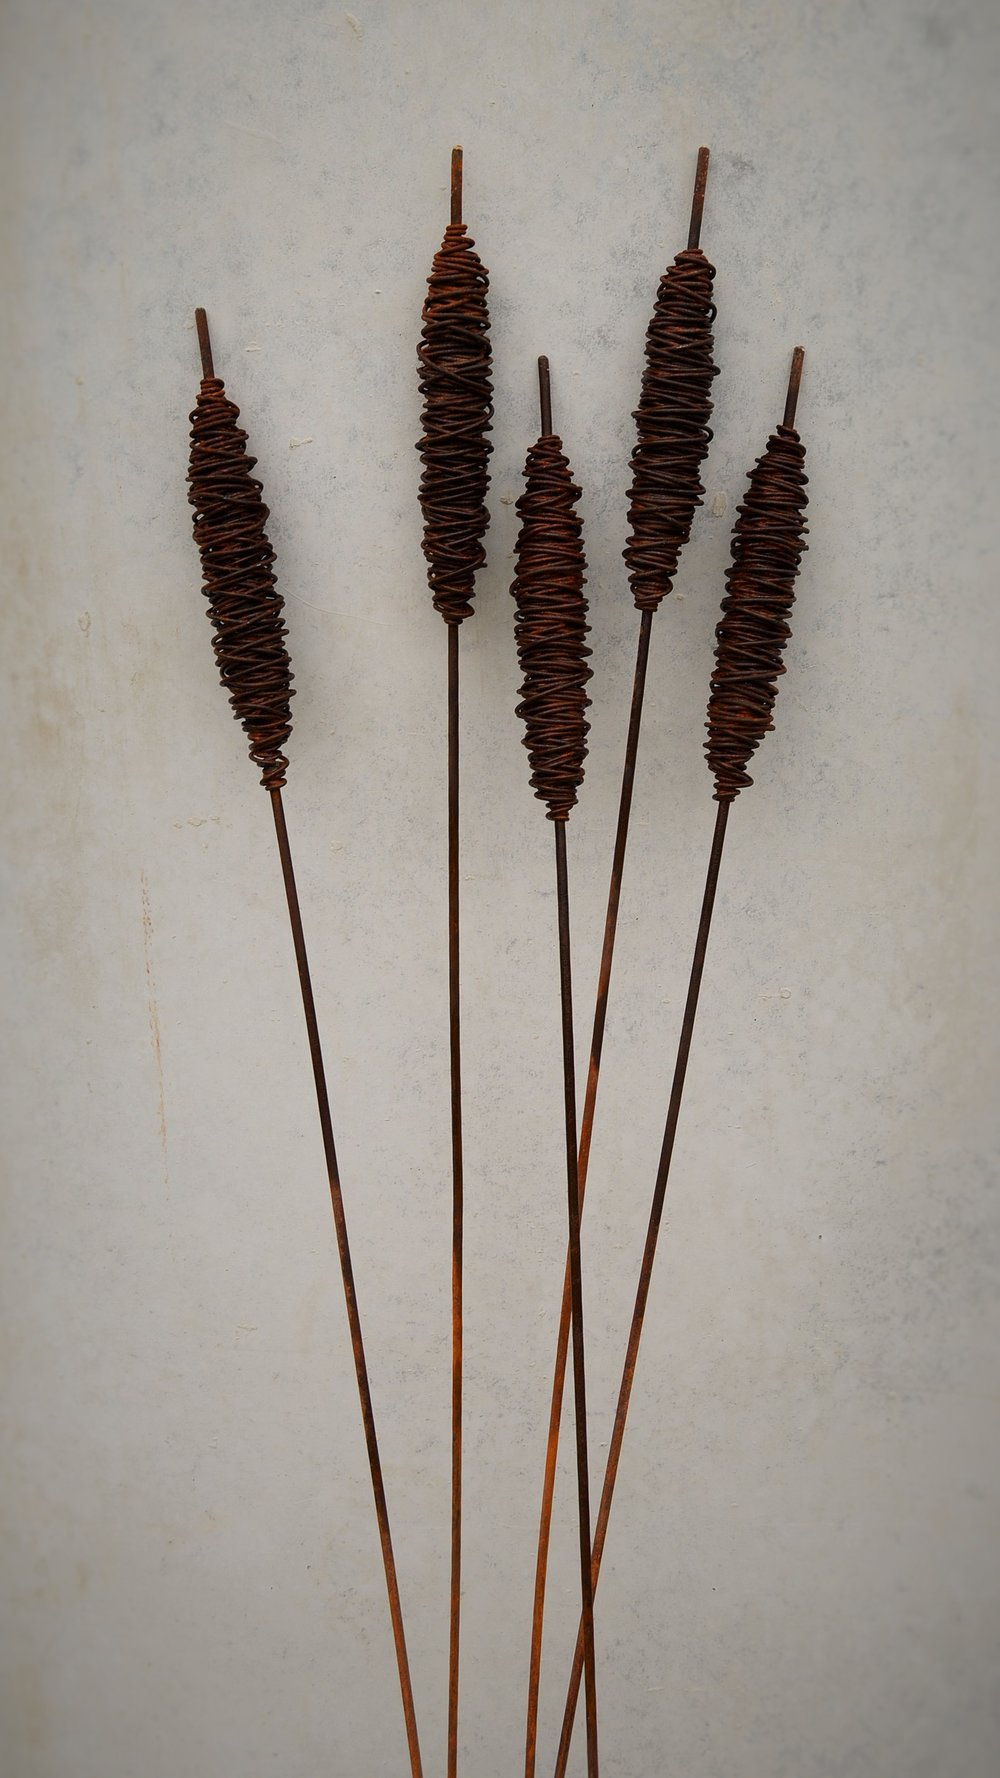 Rusty Bulrushes (14 available)  Grounded Art Nz, 1500mm tall  $75.00 ea